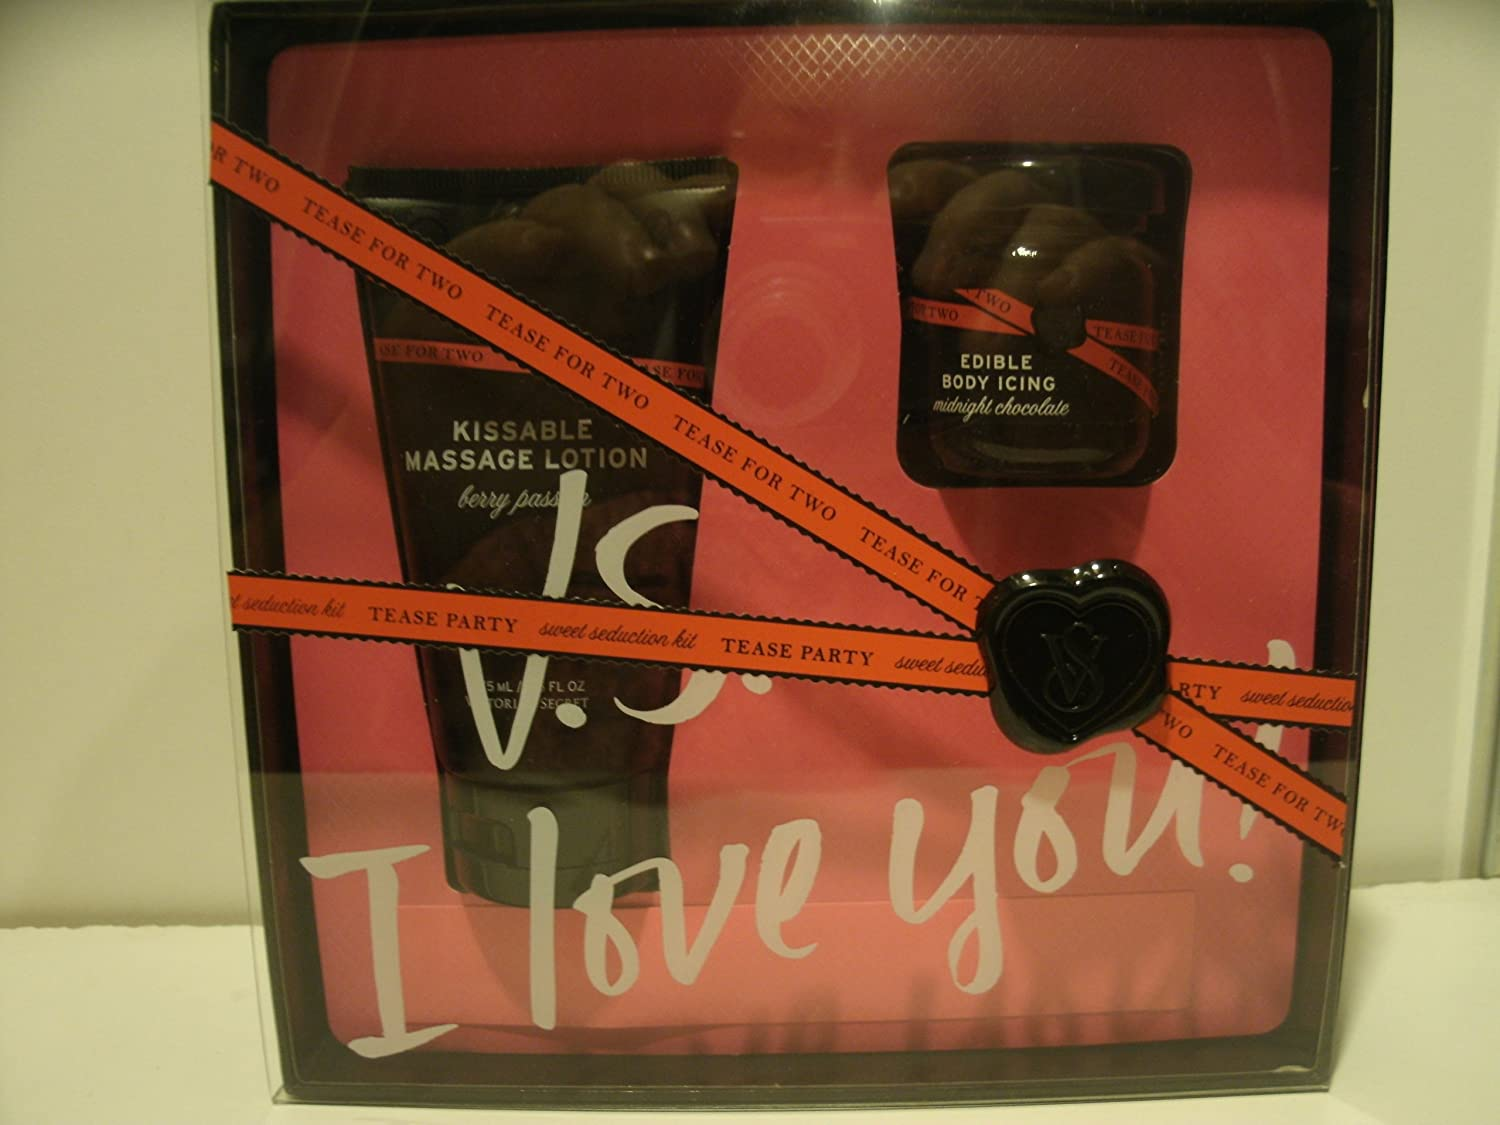 What is midnight chocolate edible body iceing from Victoria secrets?